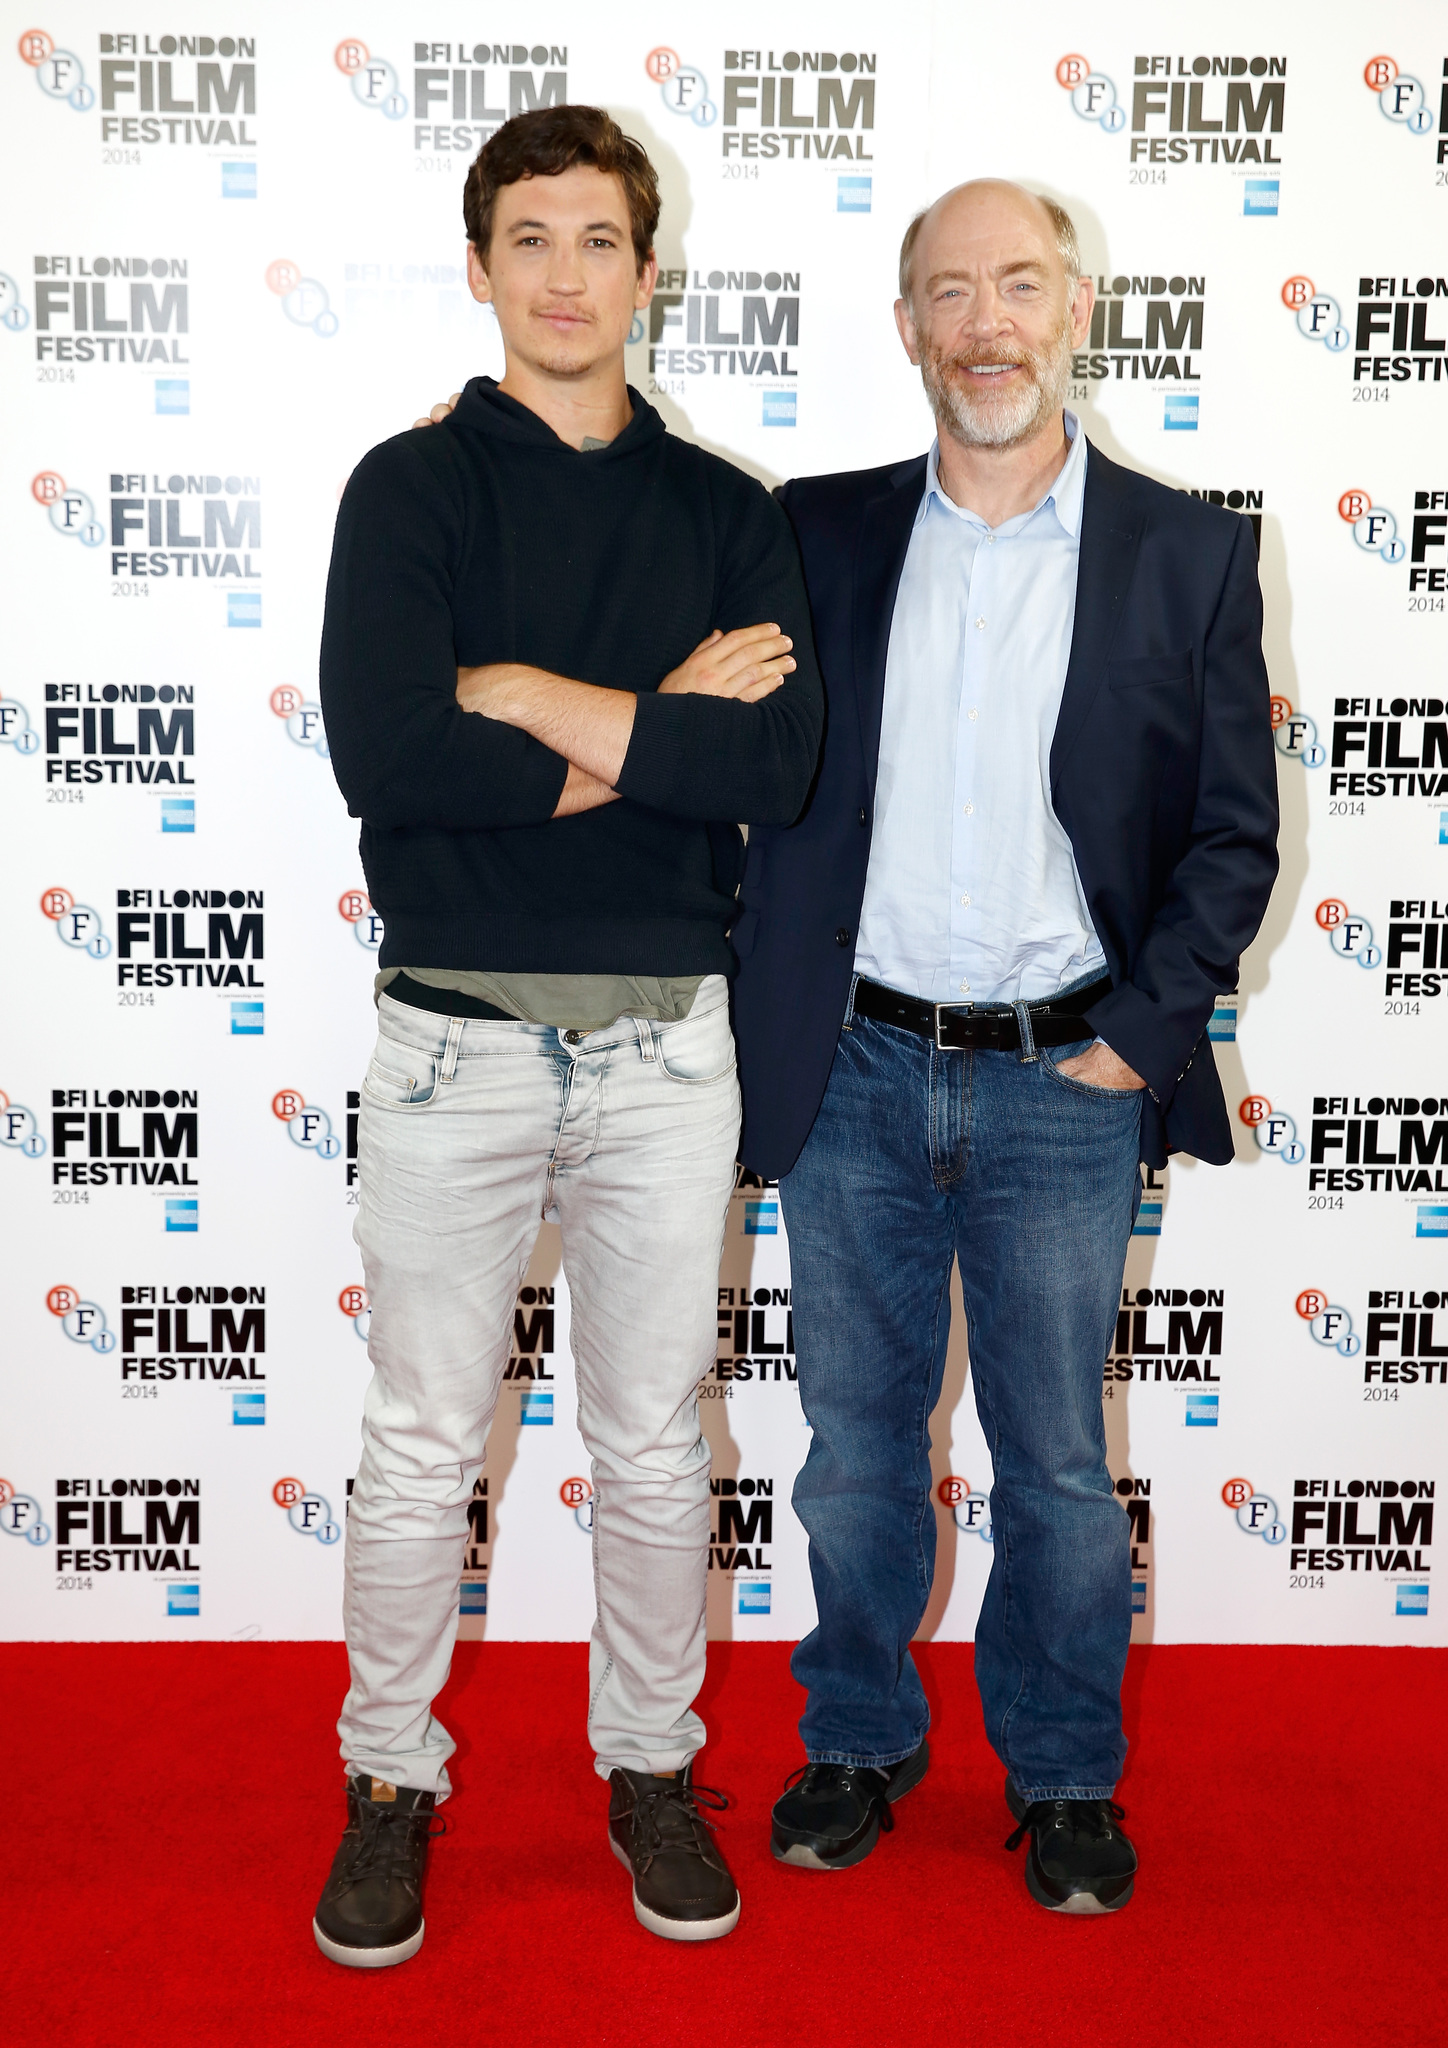 J.K. Simmons and Miles Teller at an event for Whiplash (2014)